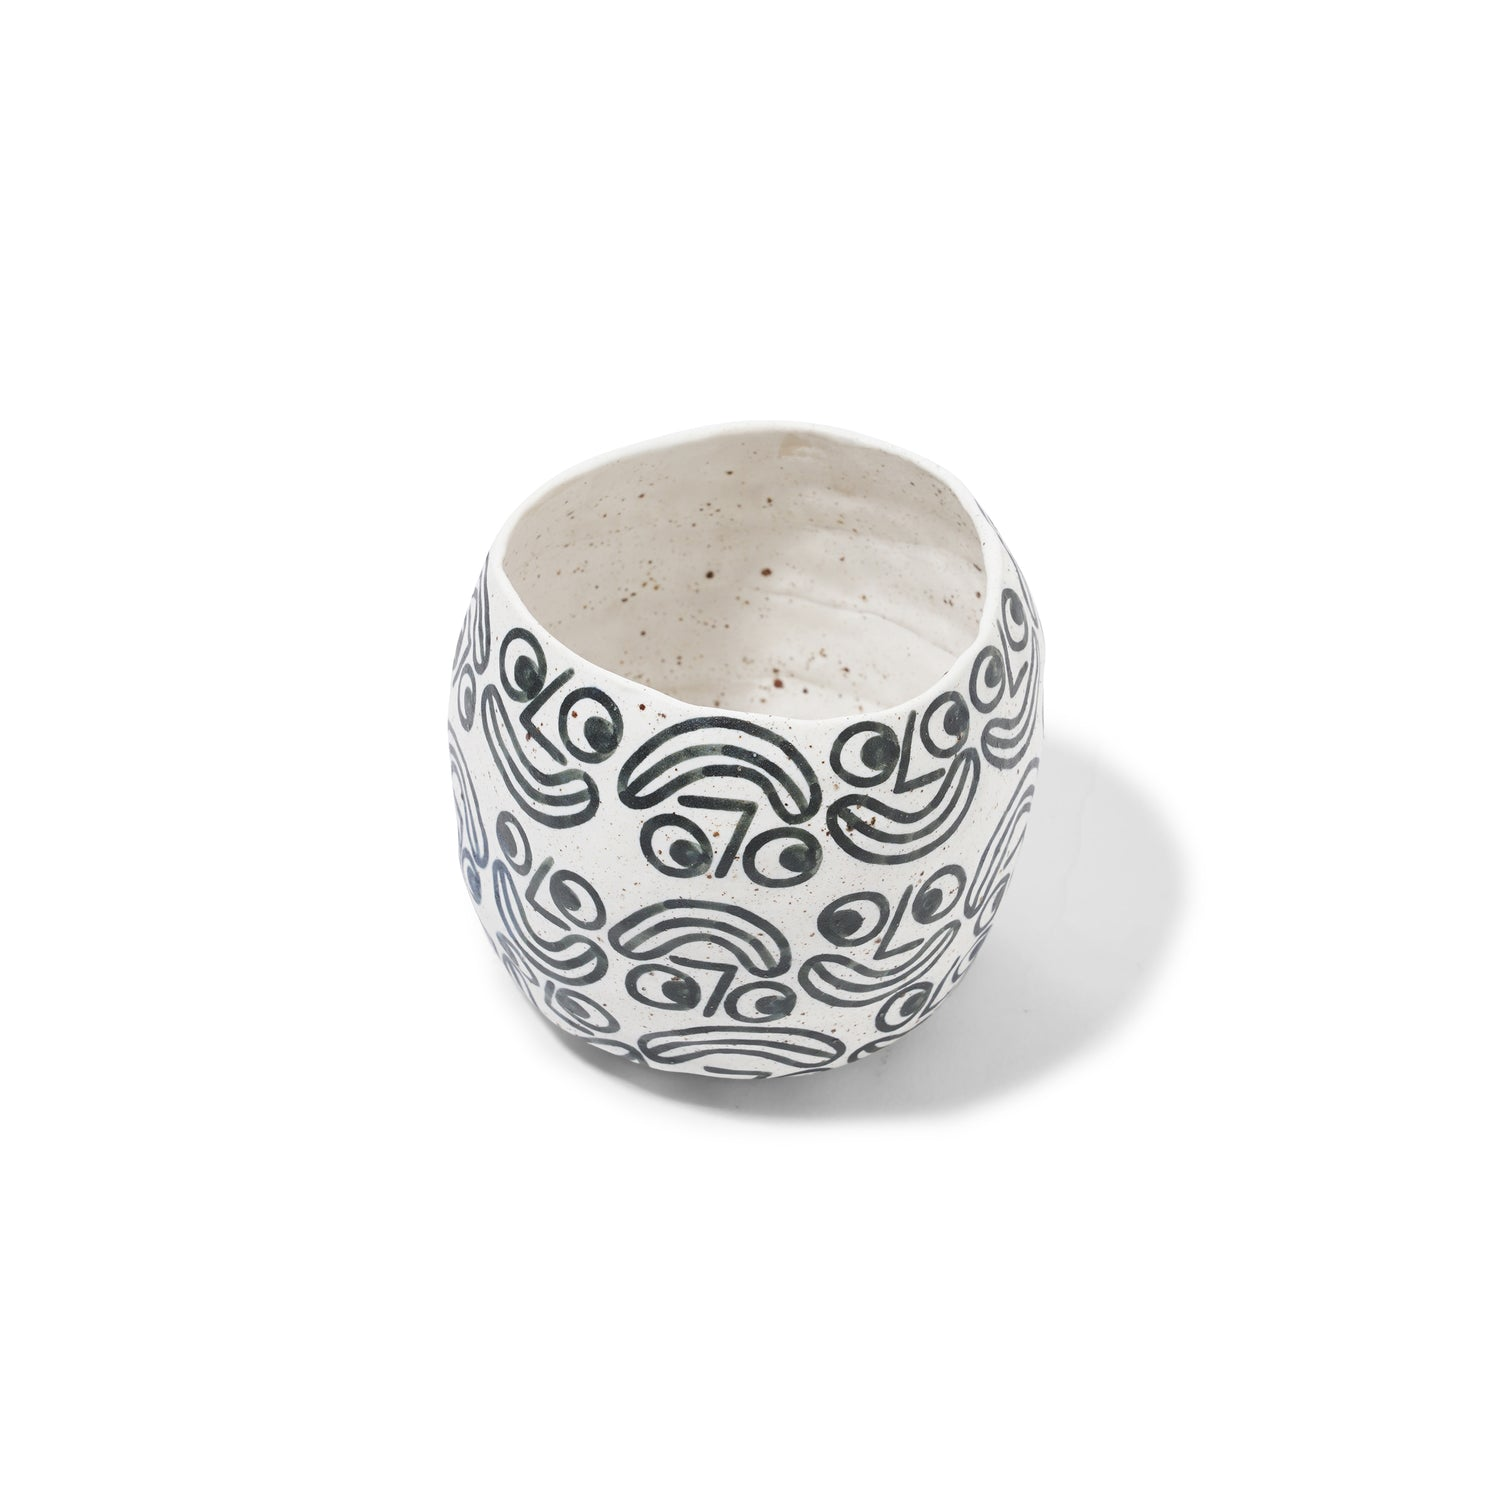 Speckle Planter - Medium